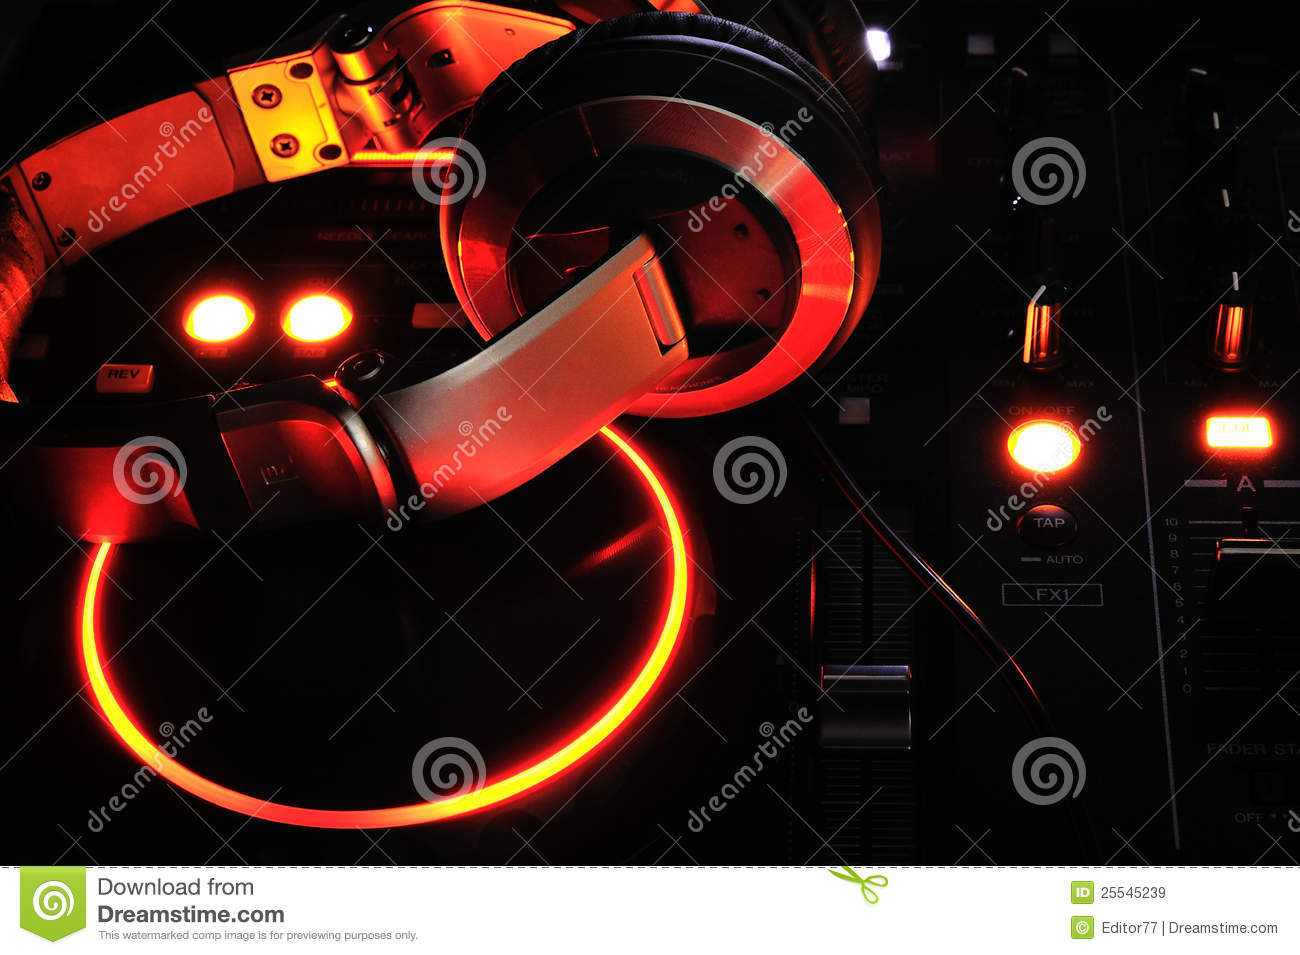 how to connect headphones to dj system